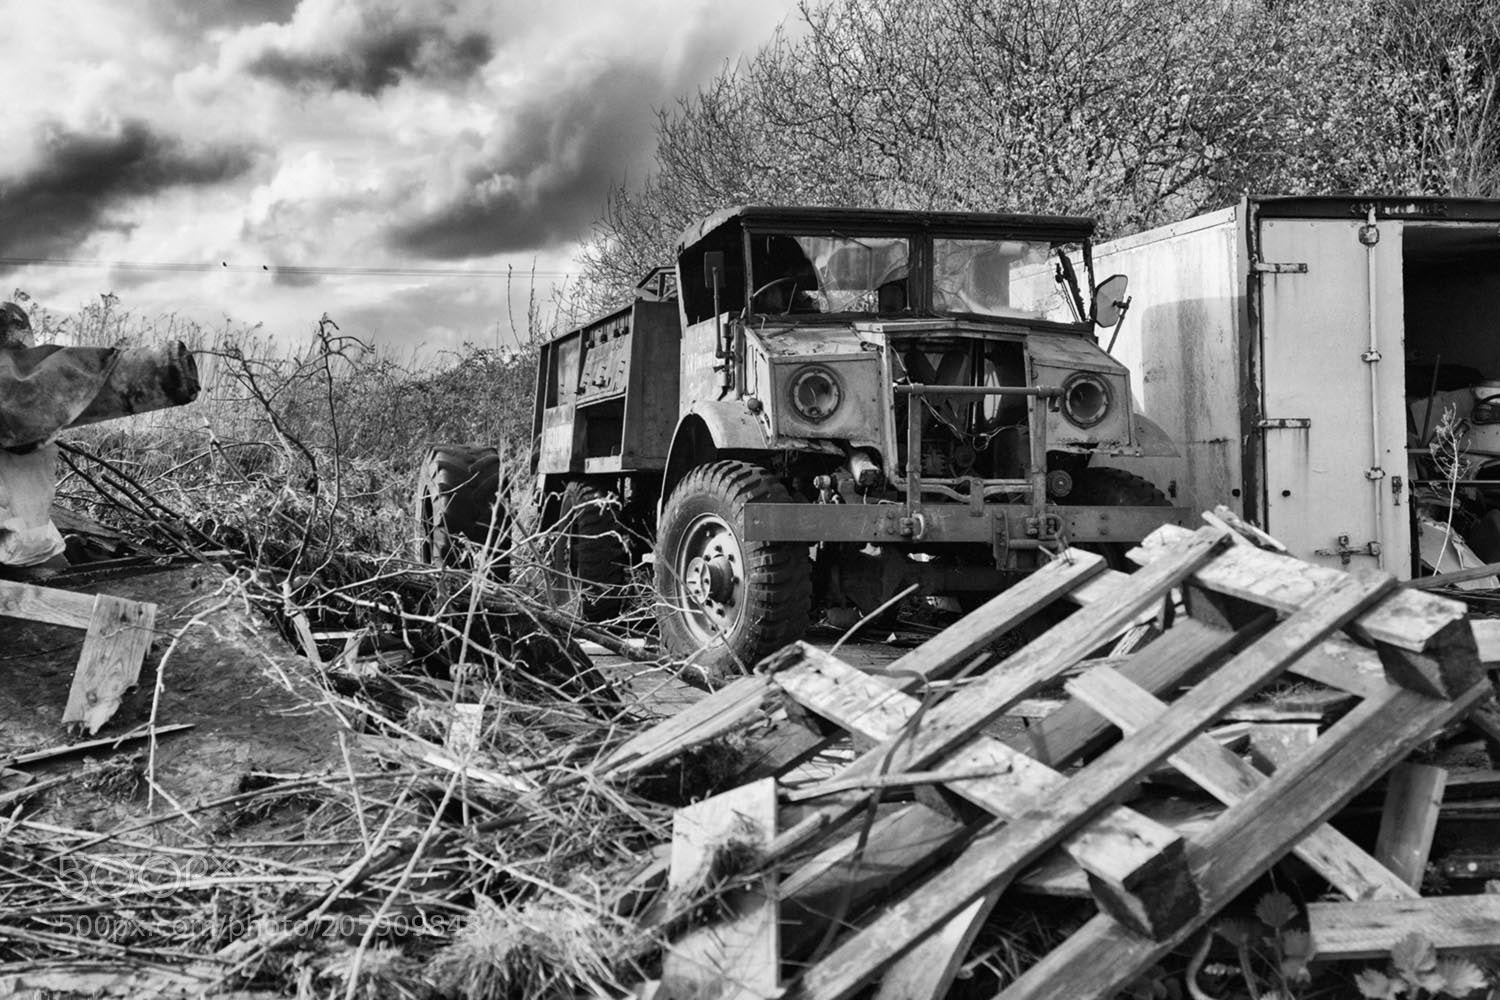 Derelict WW2 truck, Canon EOS M3, Canon EF 28mm f/2.8 IS USM